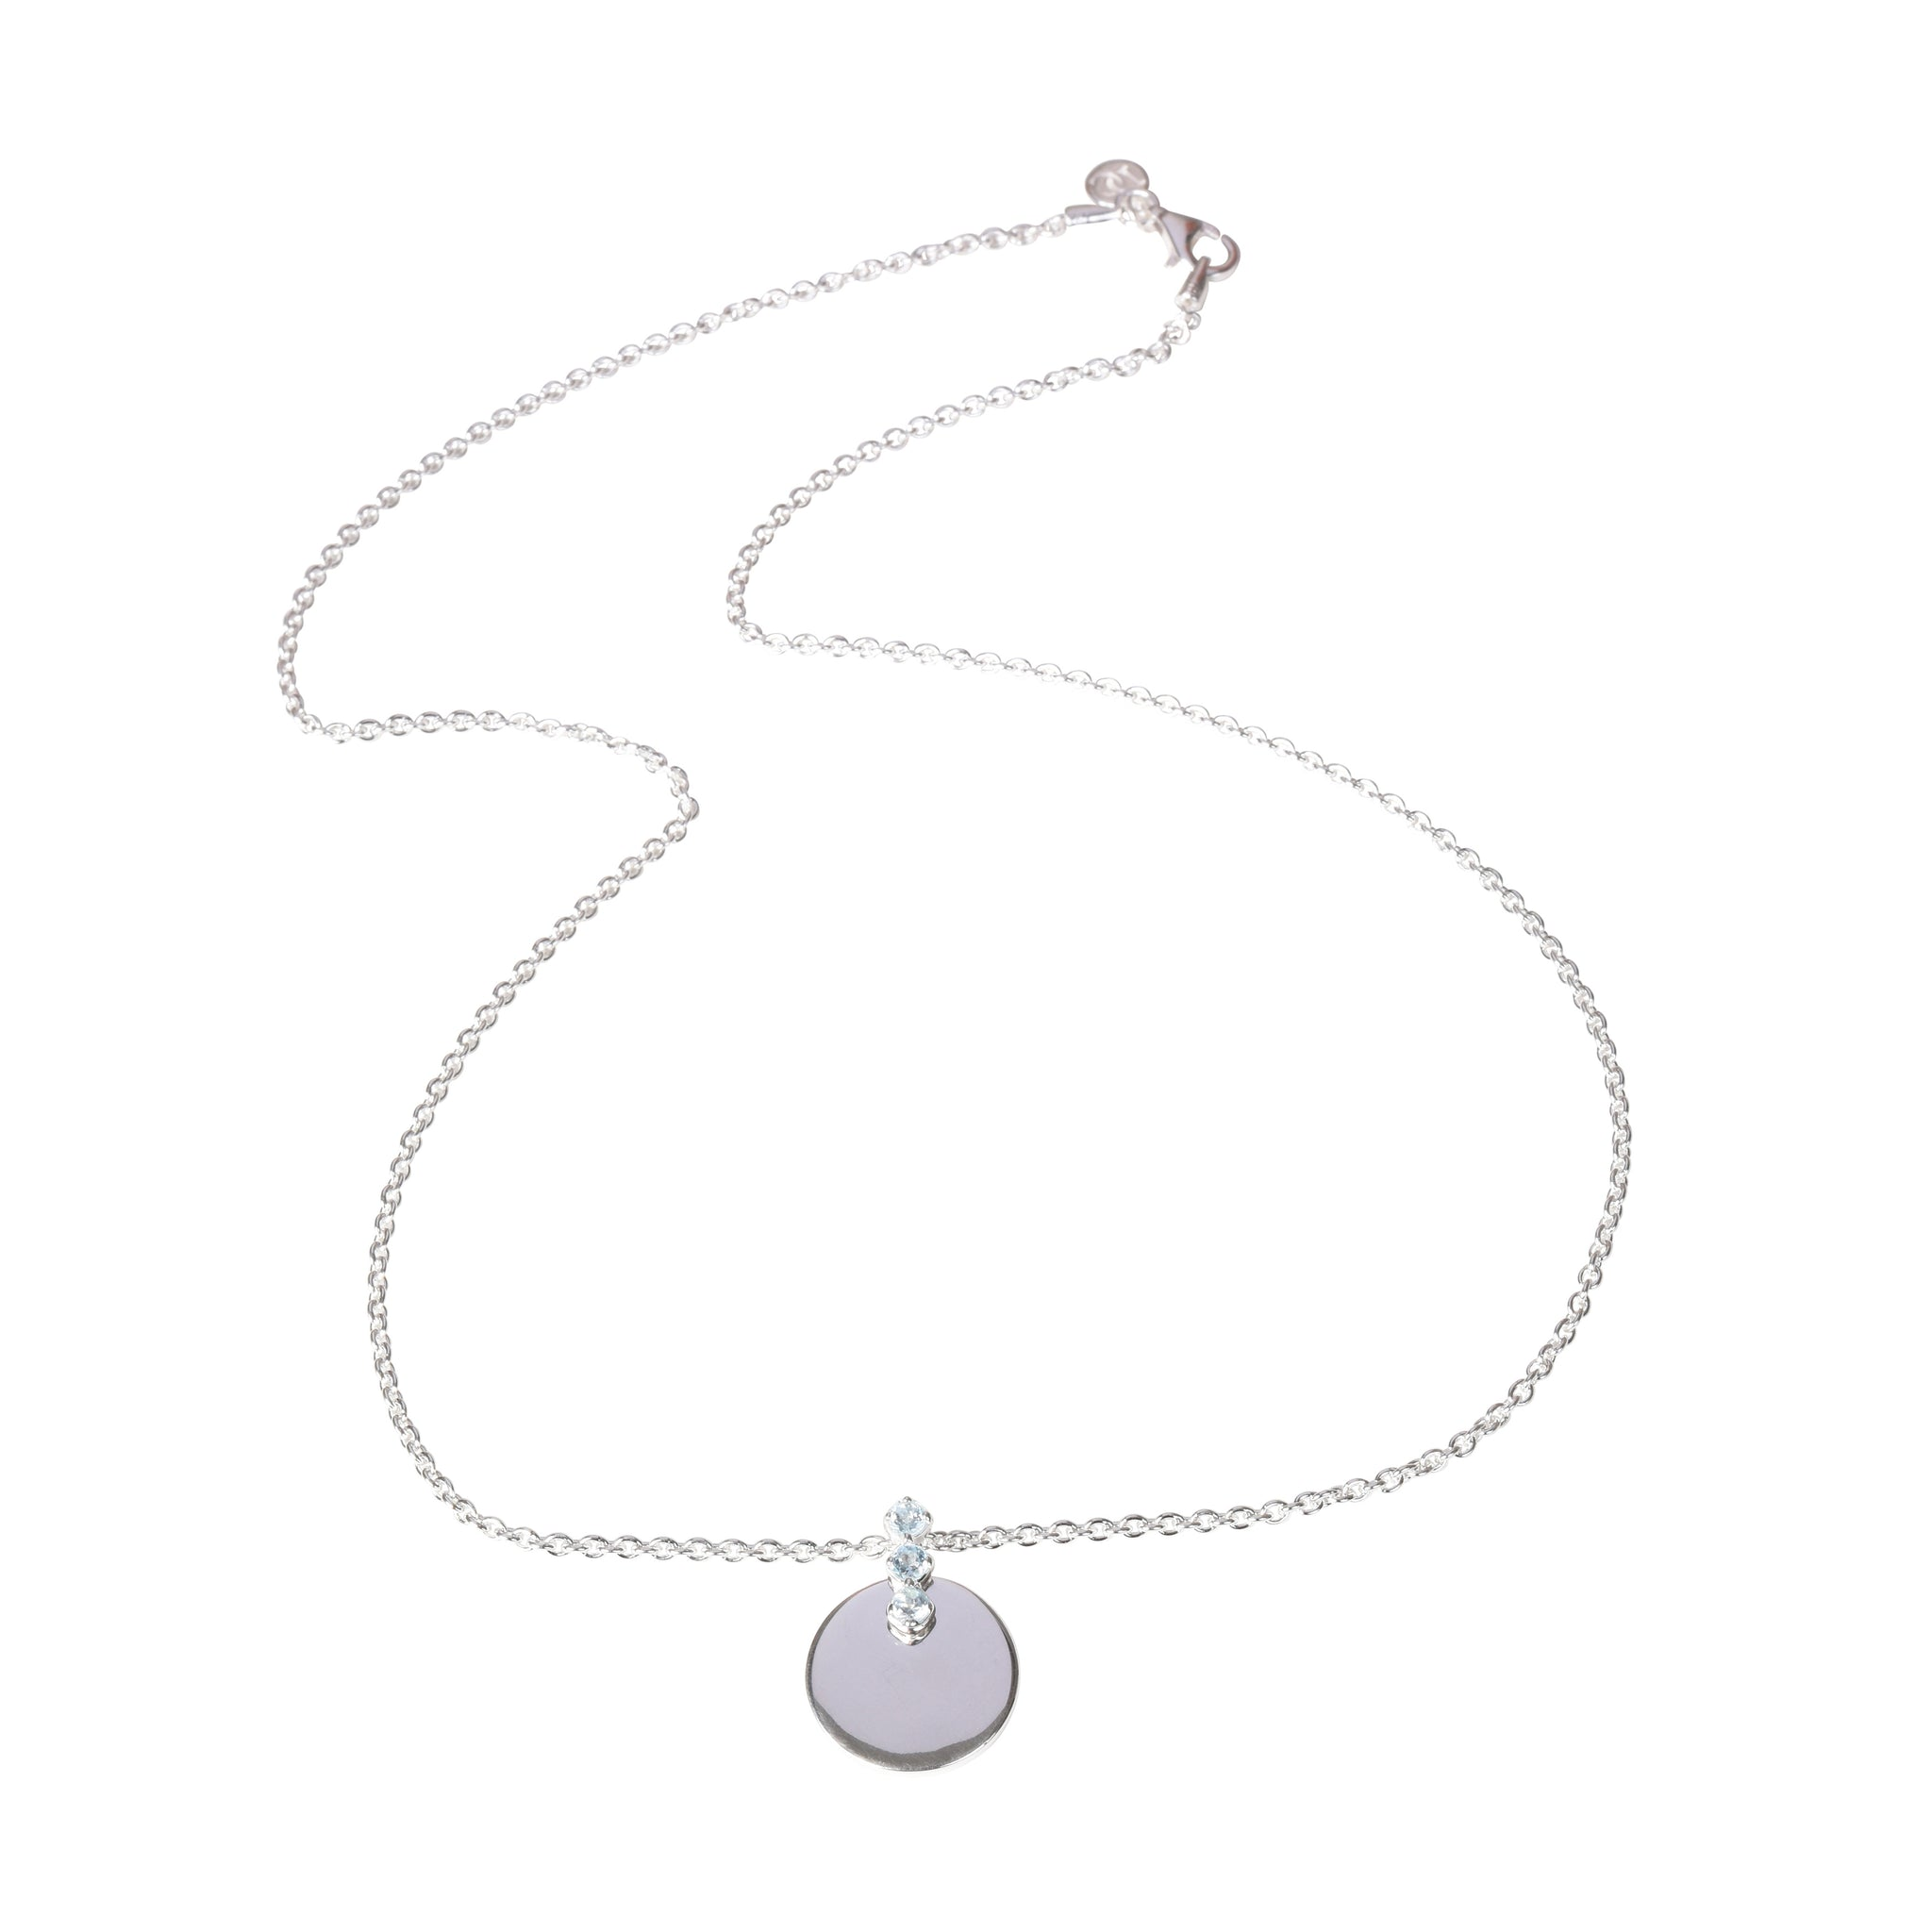 DAVINA COMBE - BLUE TOPAZ SIENNA DISC NECKLACE